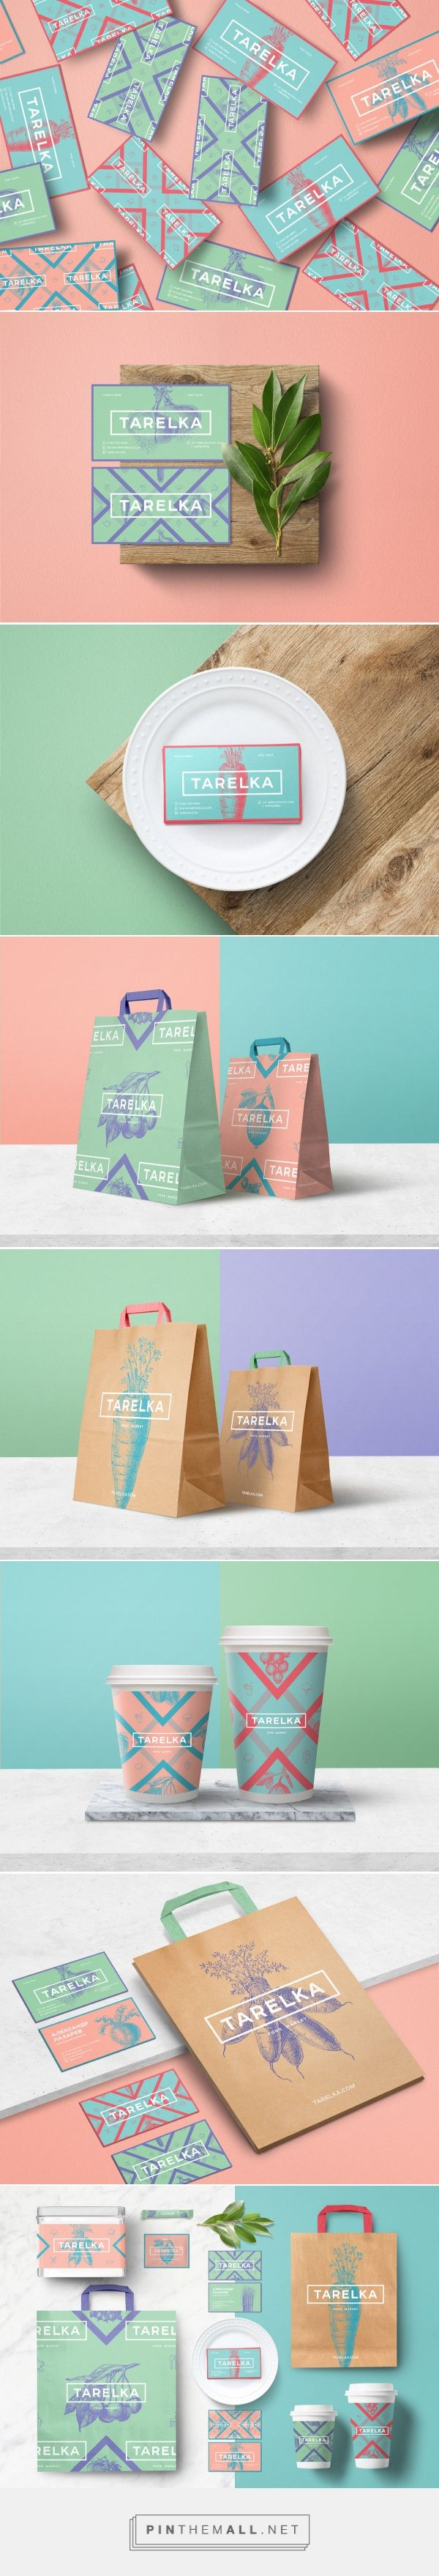 TARELKA food market graphic design branding stationary packaging logo business…